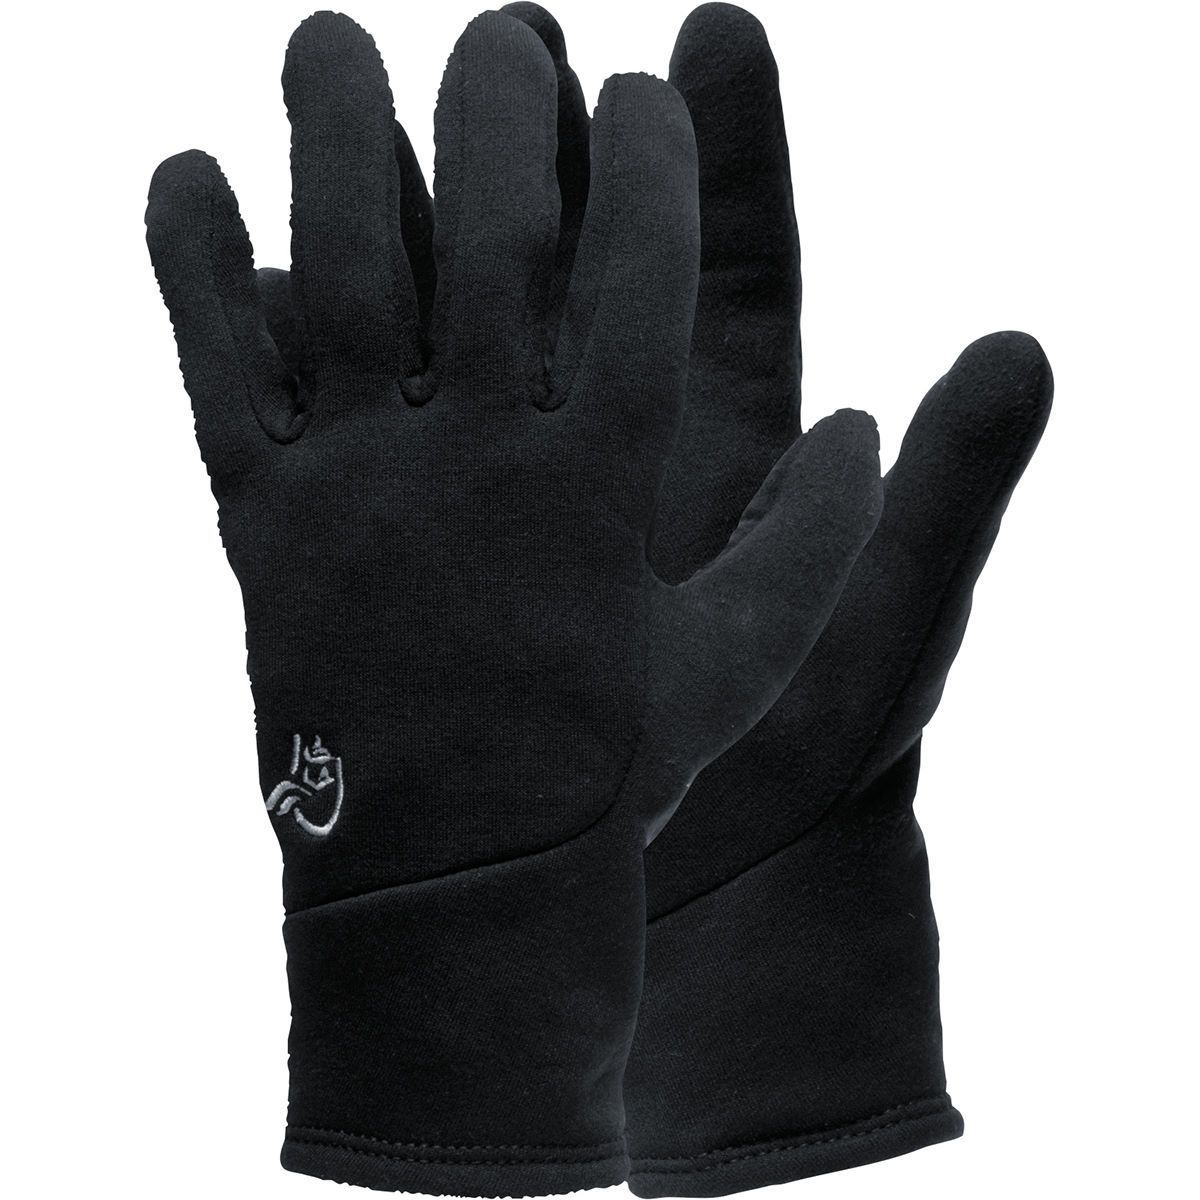 Norrøna Norrøna /29 Powerstretch Gloves   Gloves